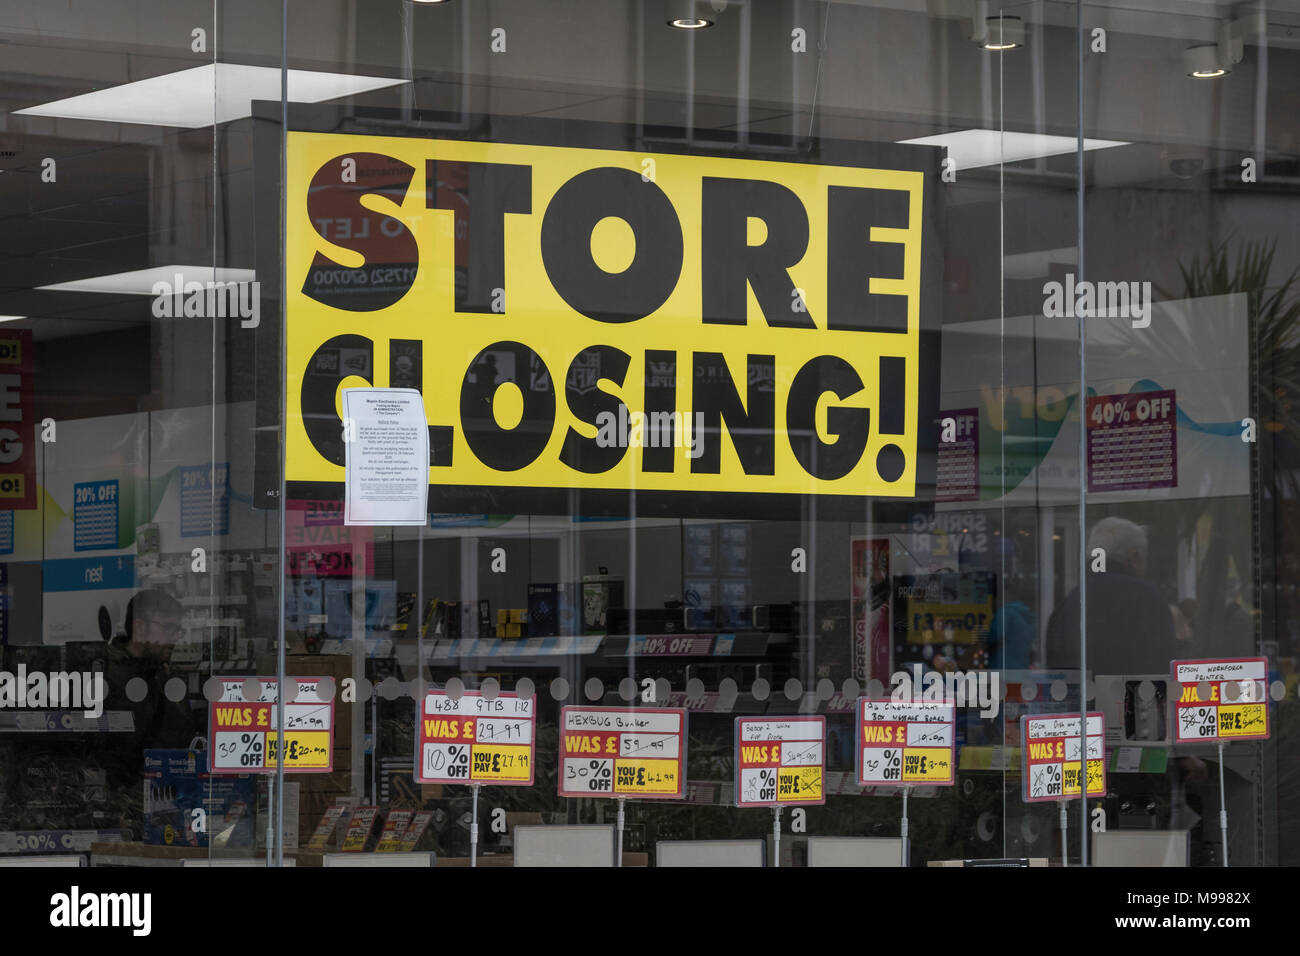 Poster in Maplin store Plymouth, Devon, after announcing closure of all stores. Metaphor for struggling high street retailers, death of high street. Stock Photo